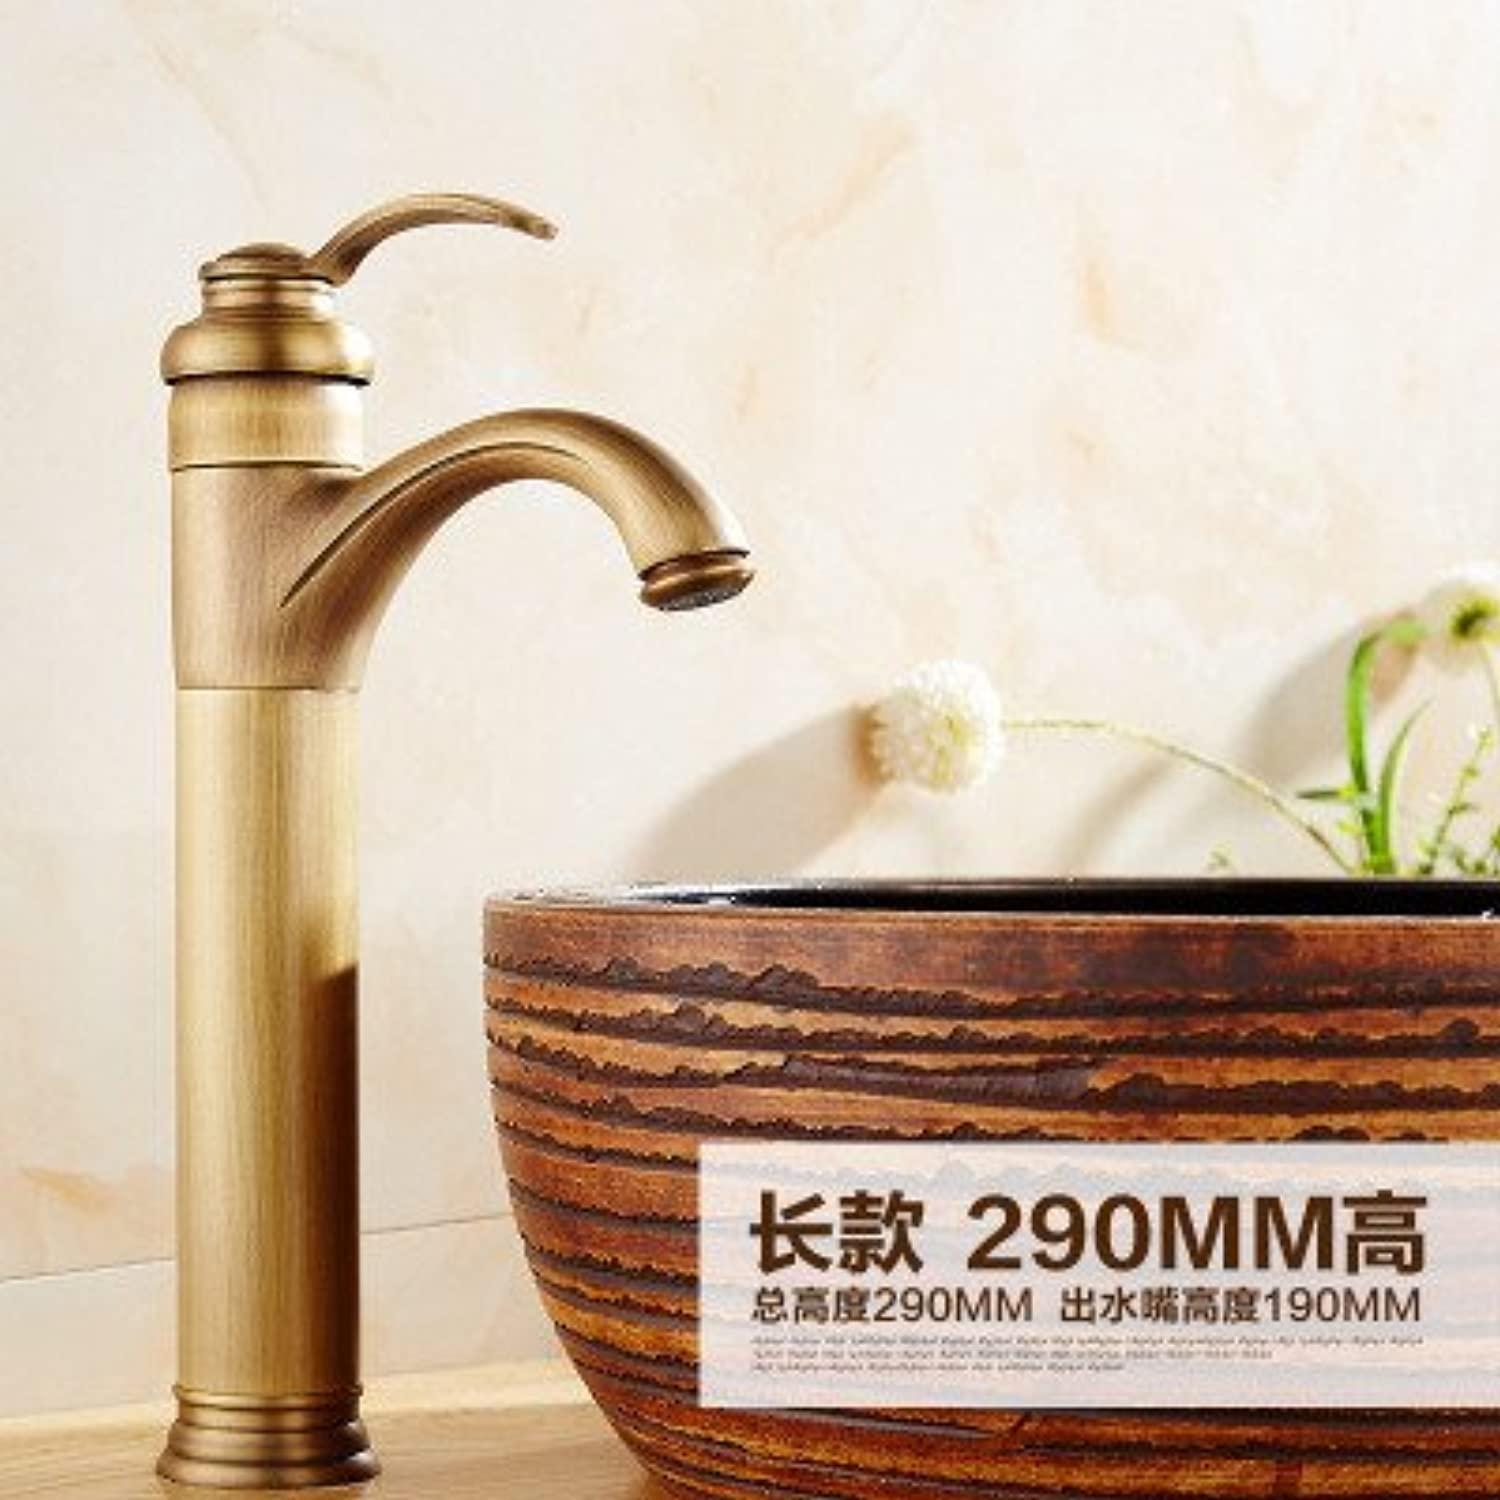 Hlluya Professional Sink Mixer Tap Kitchen Faucet The Antique copper hot and cold single hole basin mixer, High